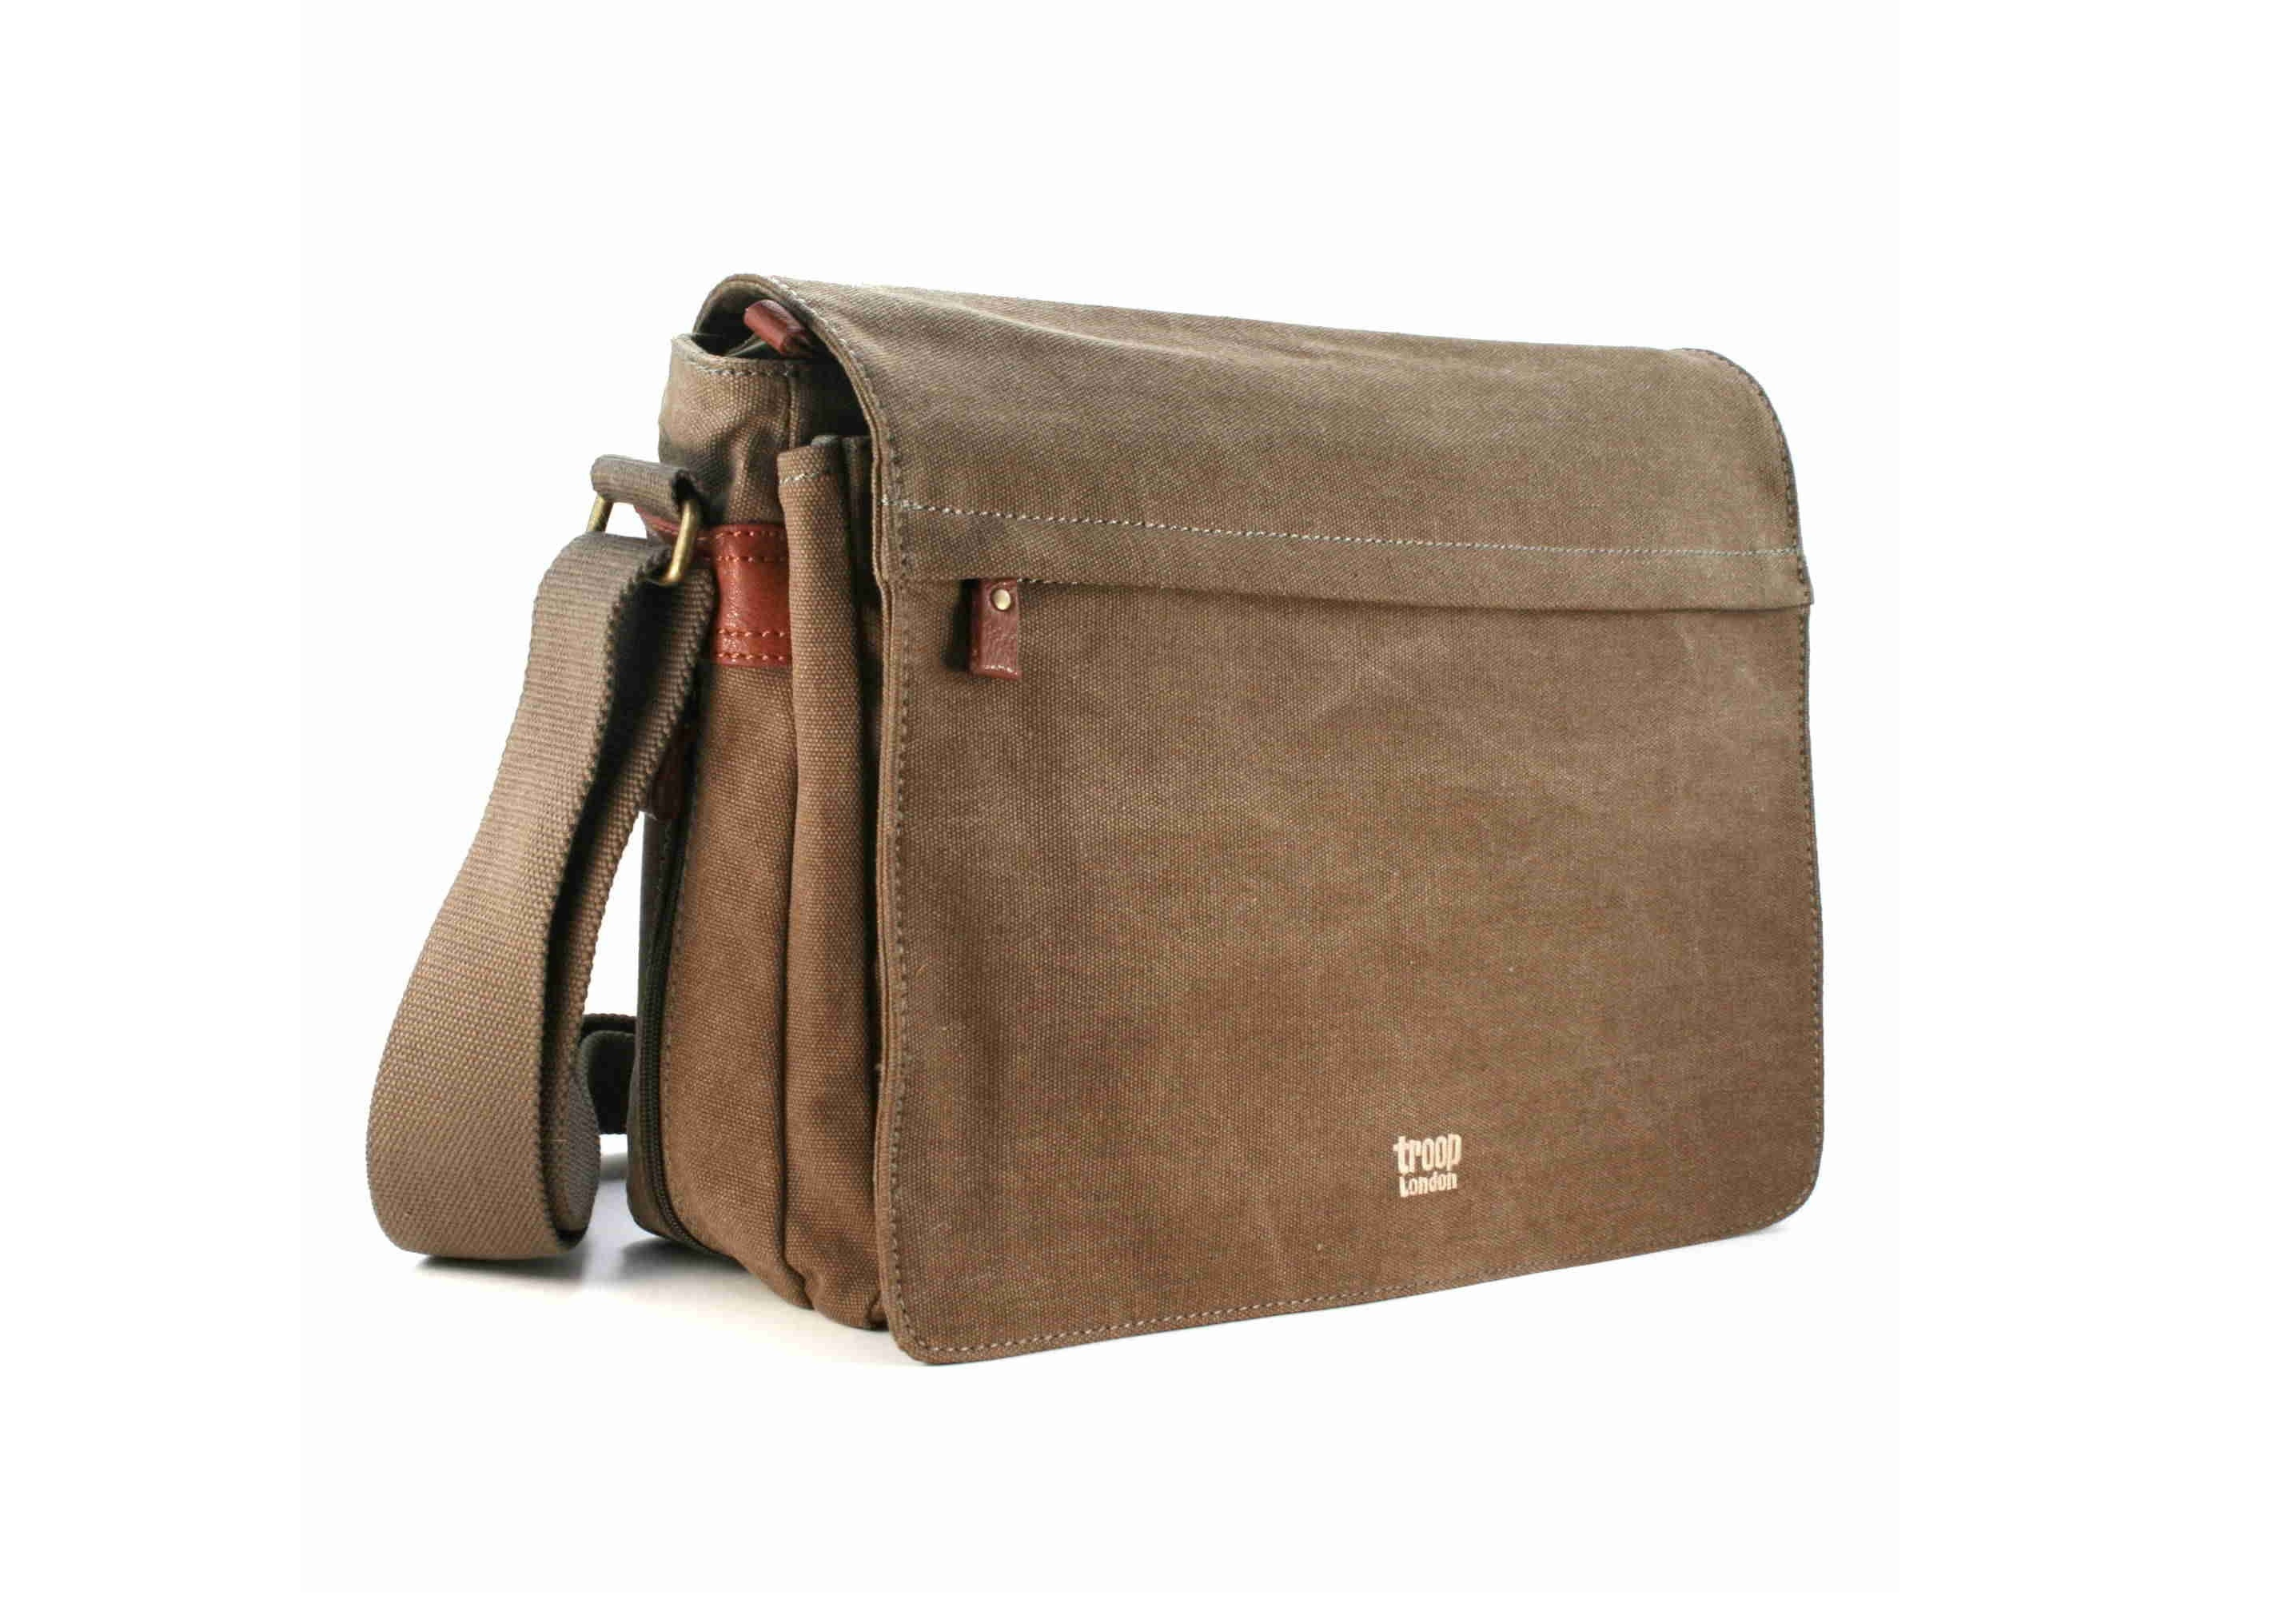 Troop London Canvas Messenger Shoulder Bag 27